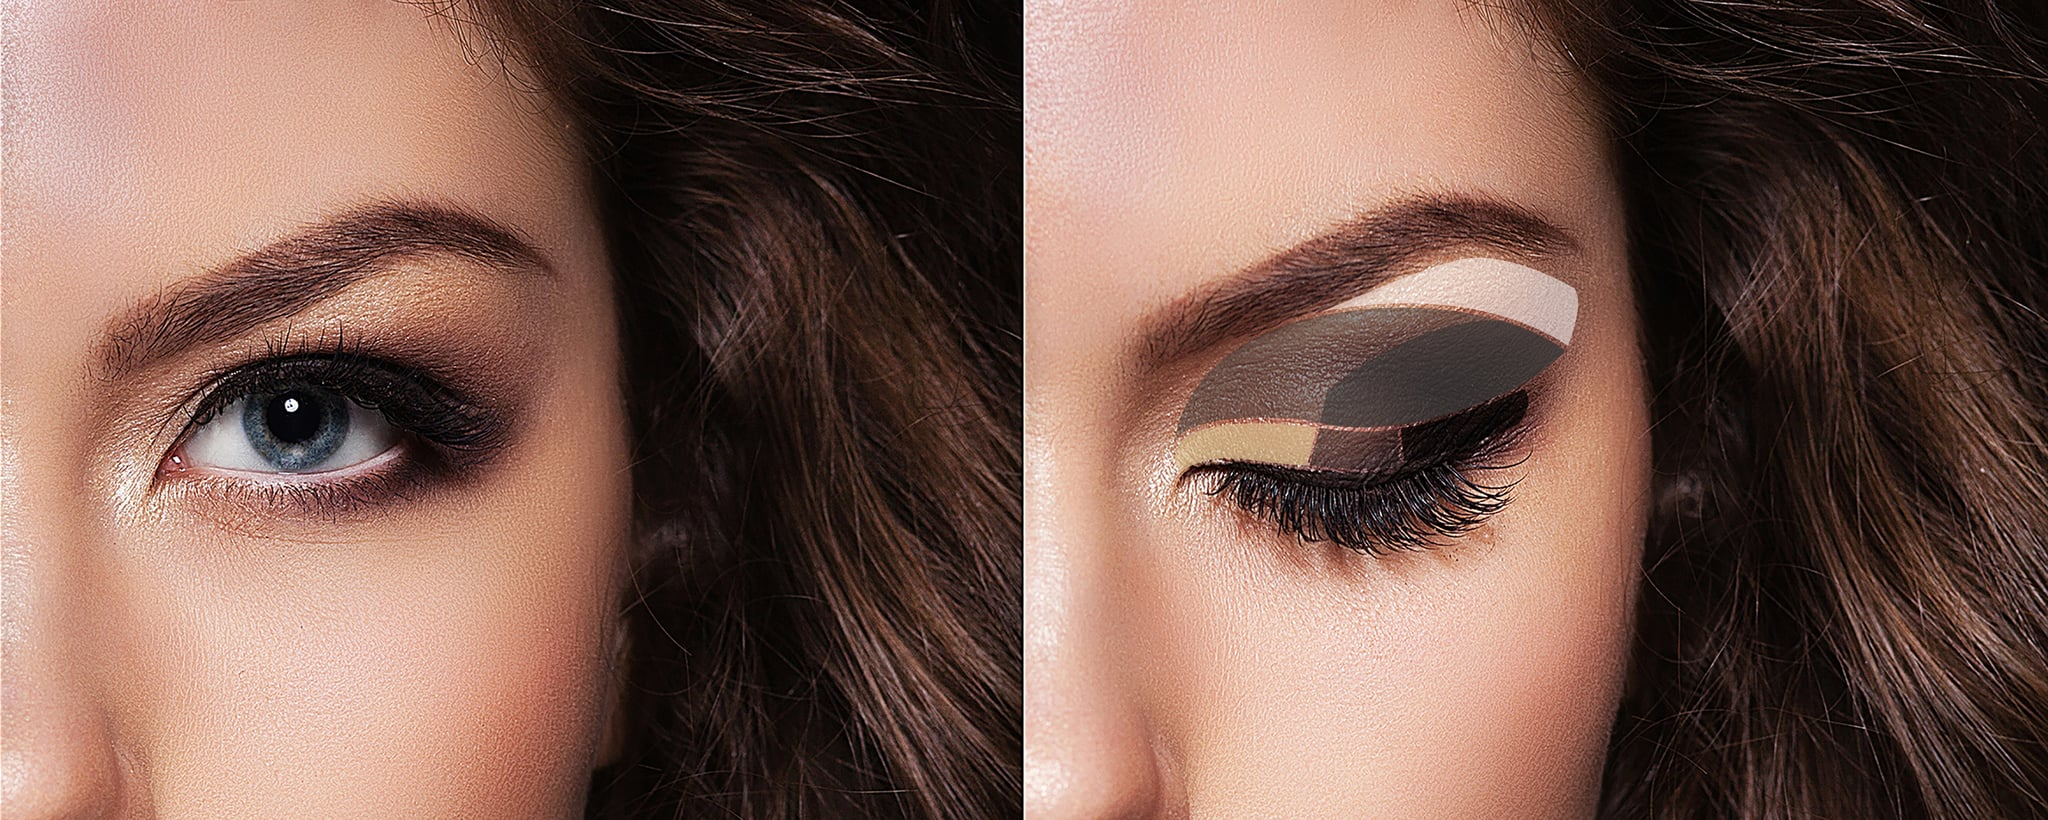 How to contour for your eye shape popsugar beauty middle east ccuart Gallery